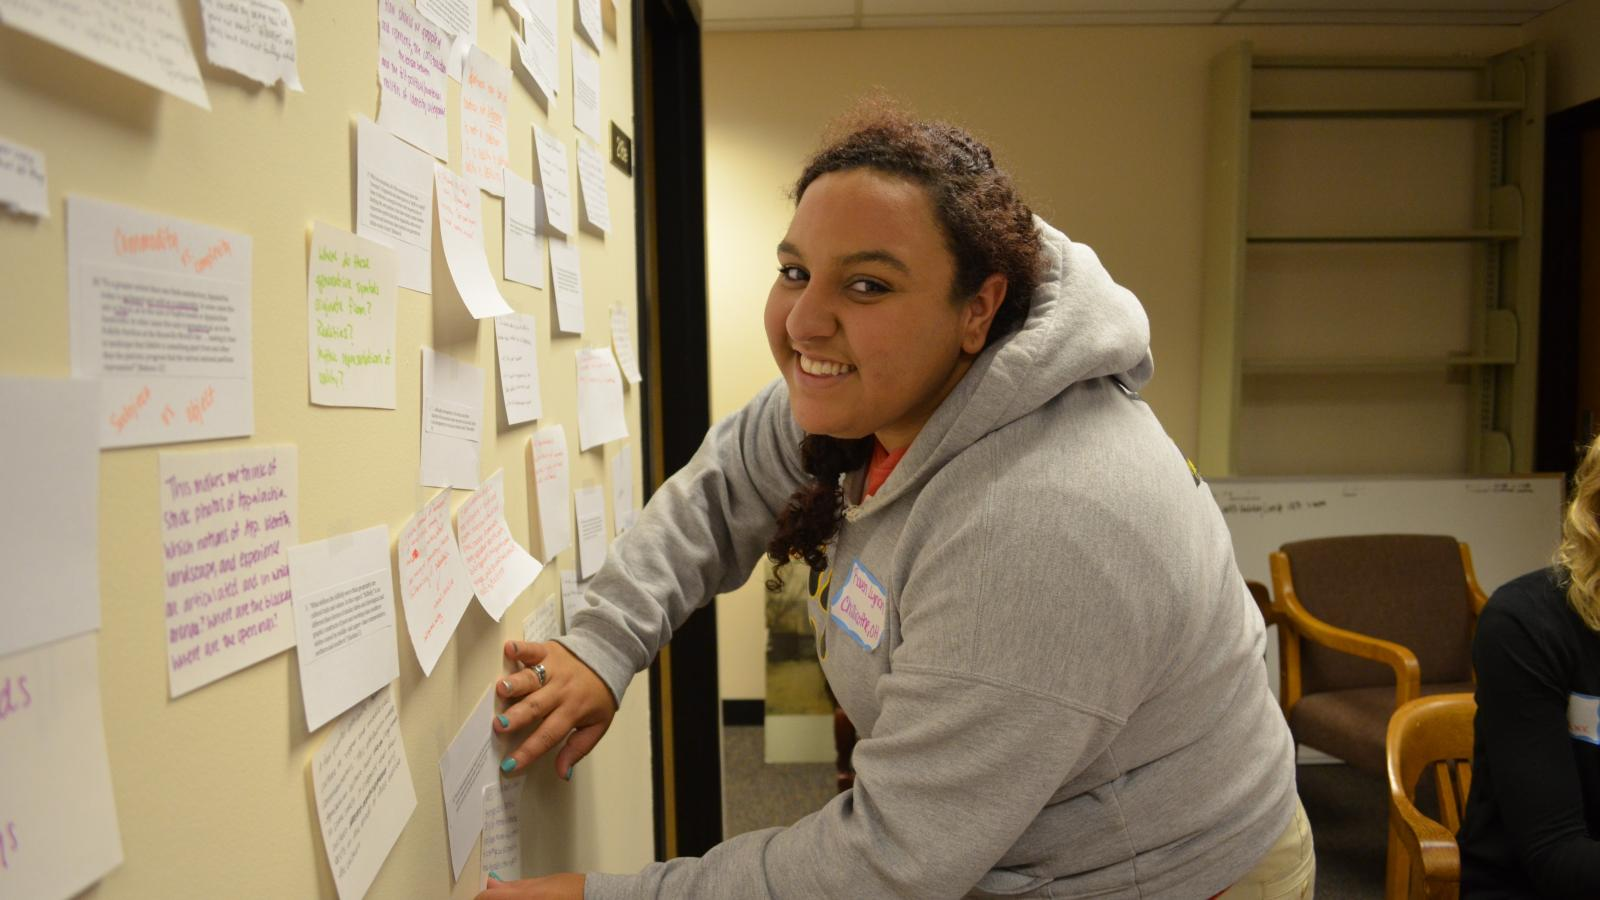 Raven Lynch posts on the brainstorm board at the 2013 retreat